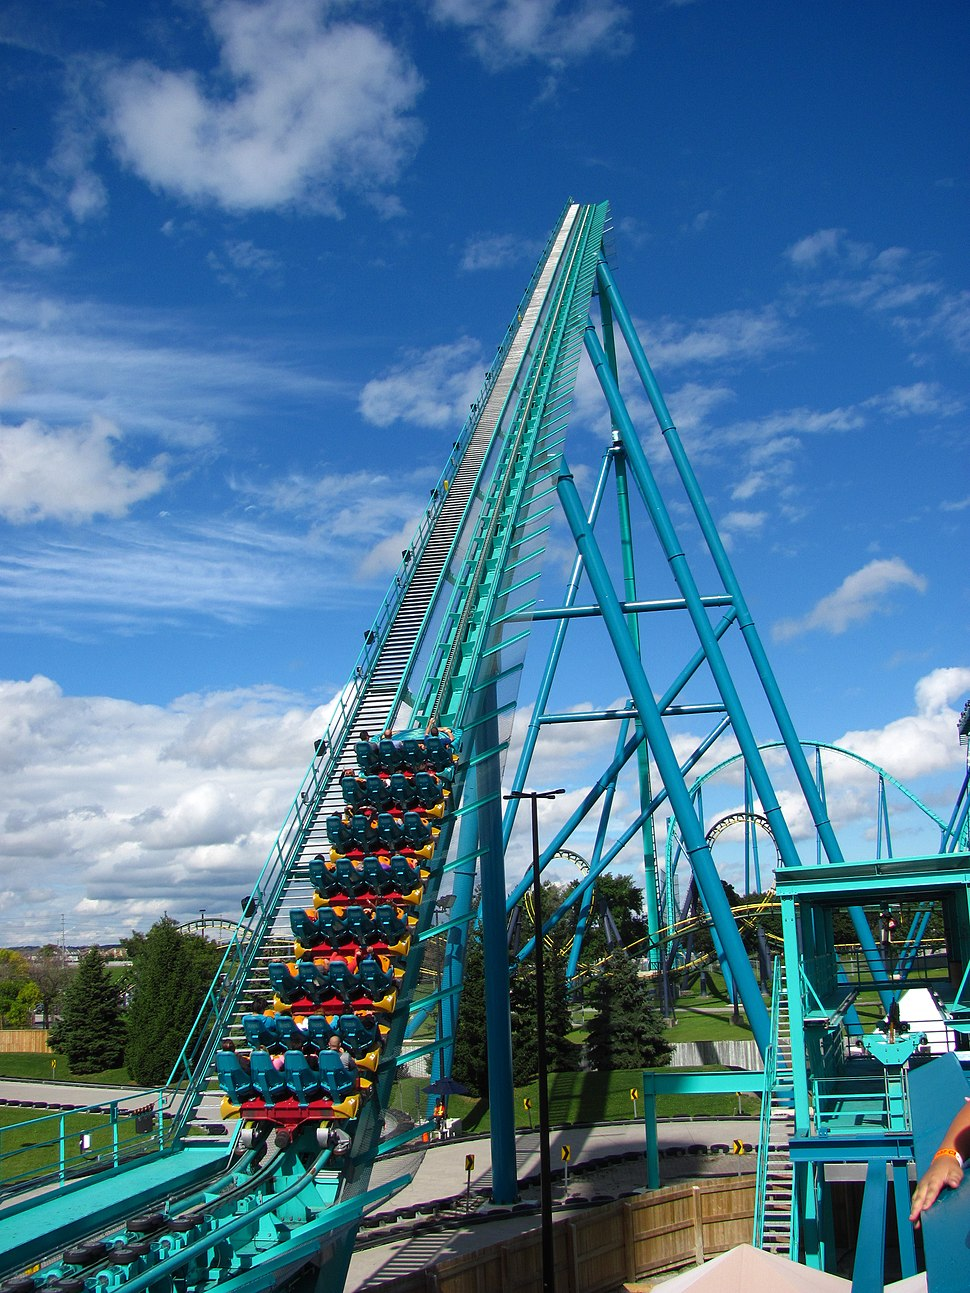 Leviathan lift hill with train